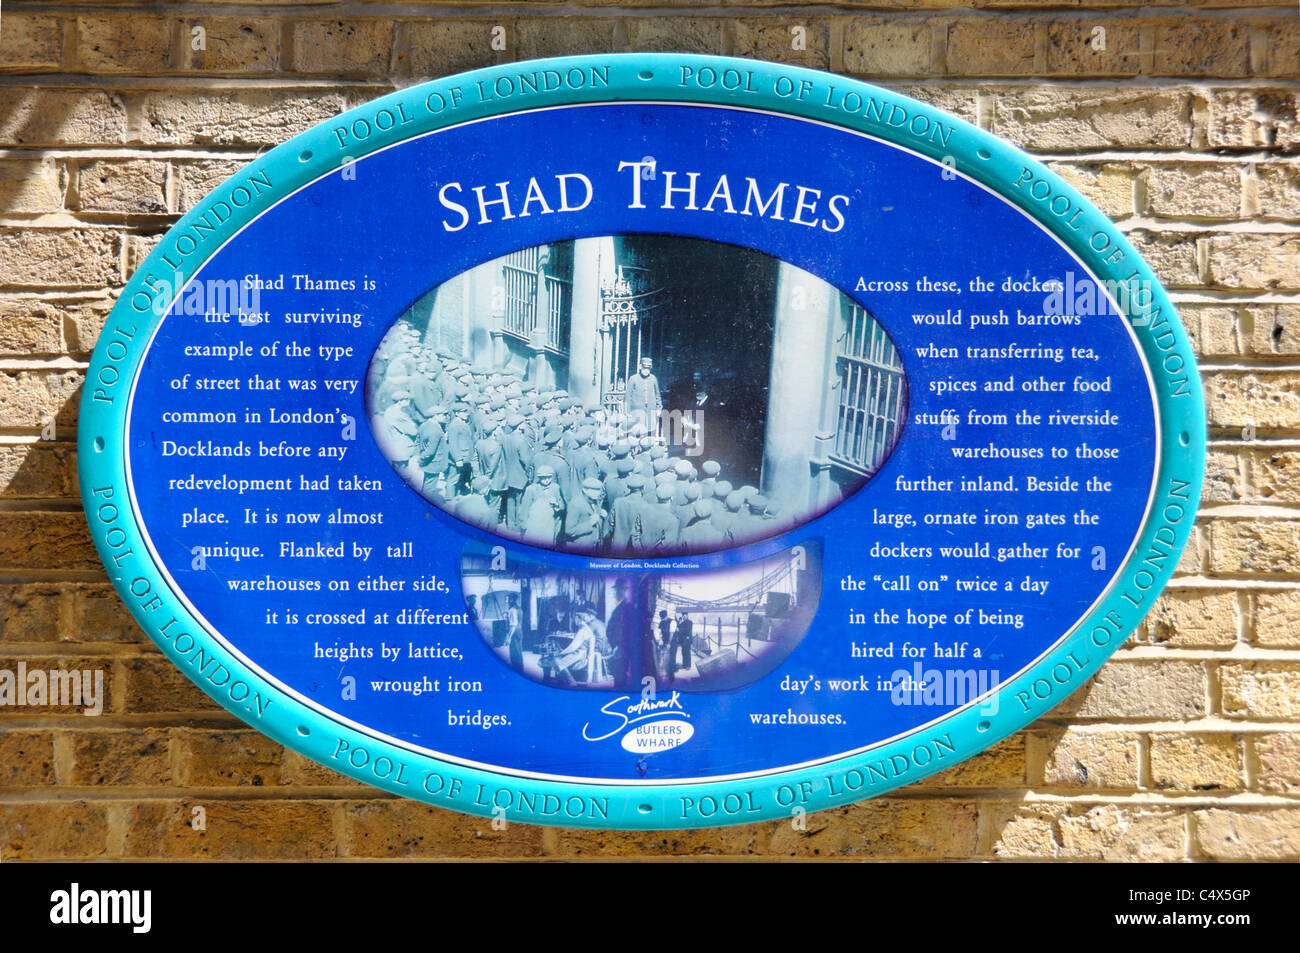 Historical data recorded on large blue wall plaque describing the type of warehousing street found at back of London - Stock Image